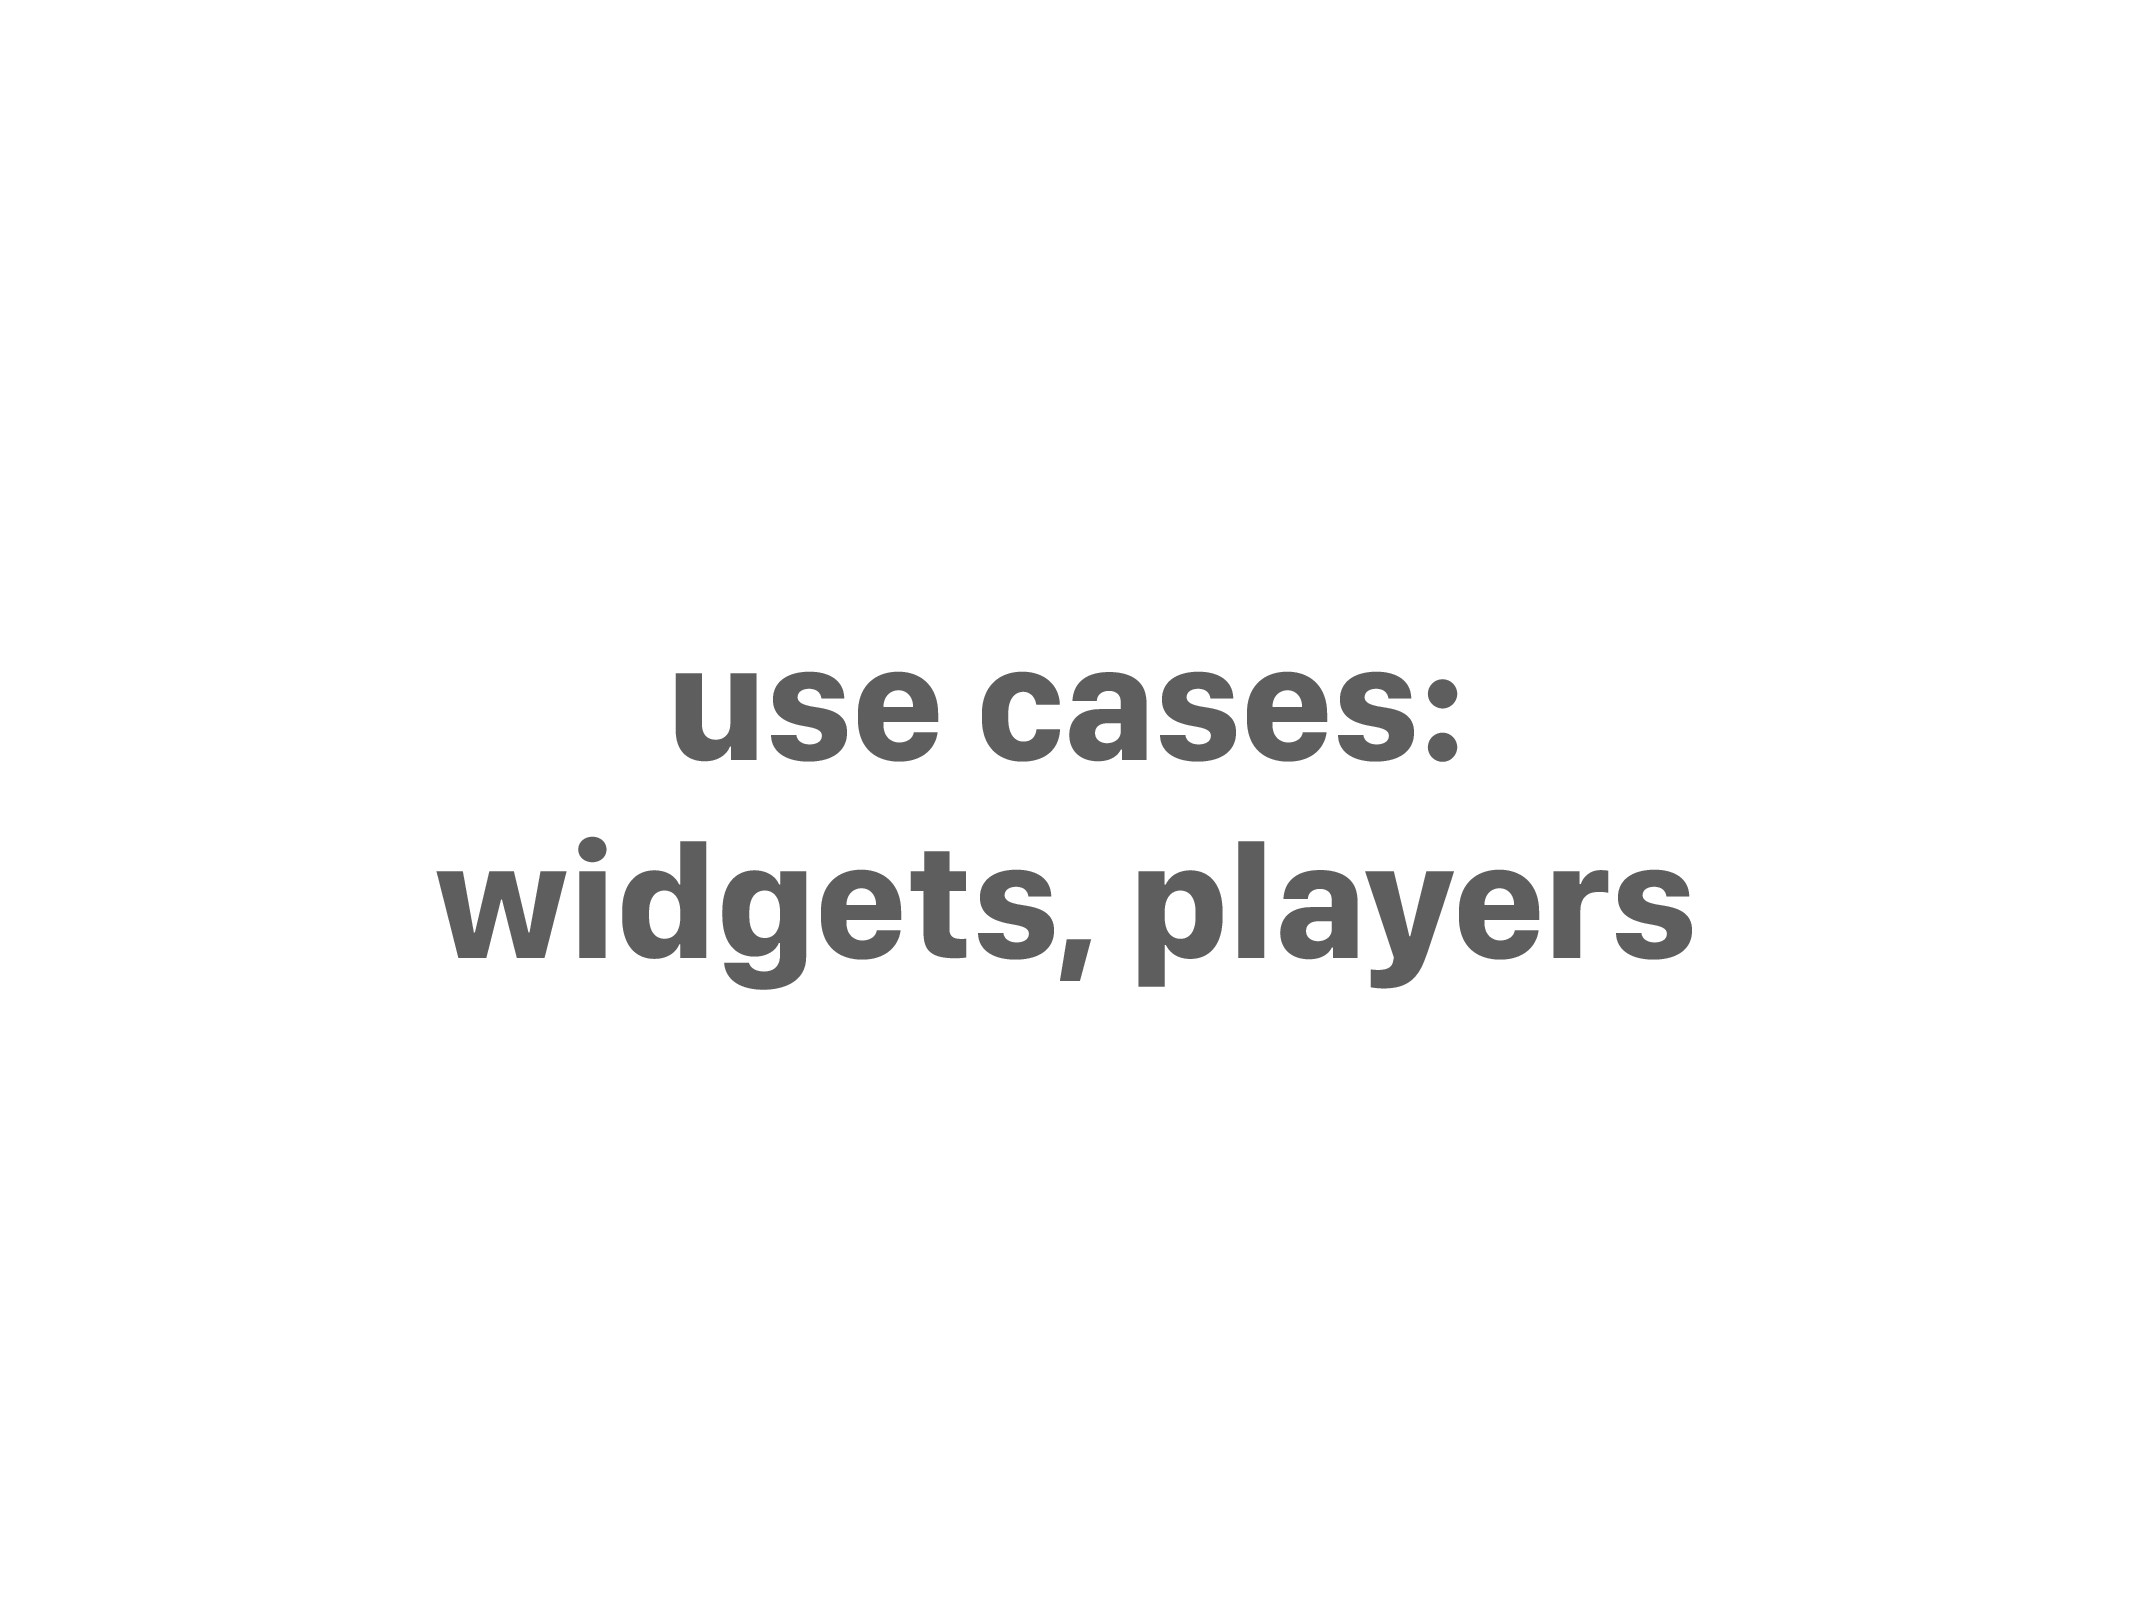 use cases: widgets, players